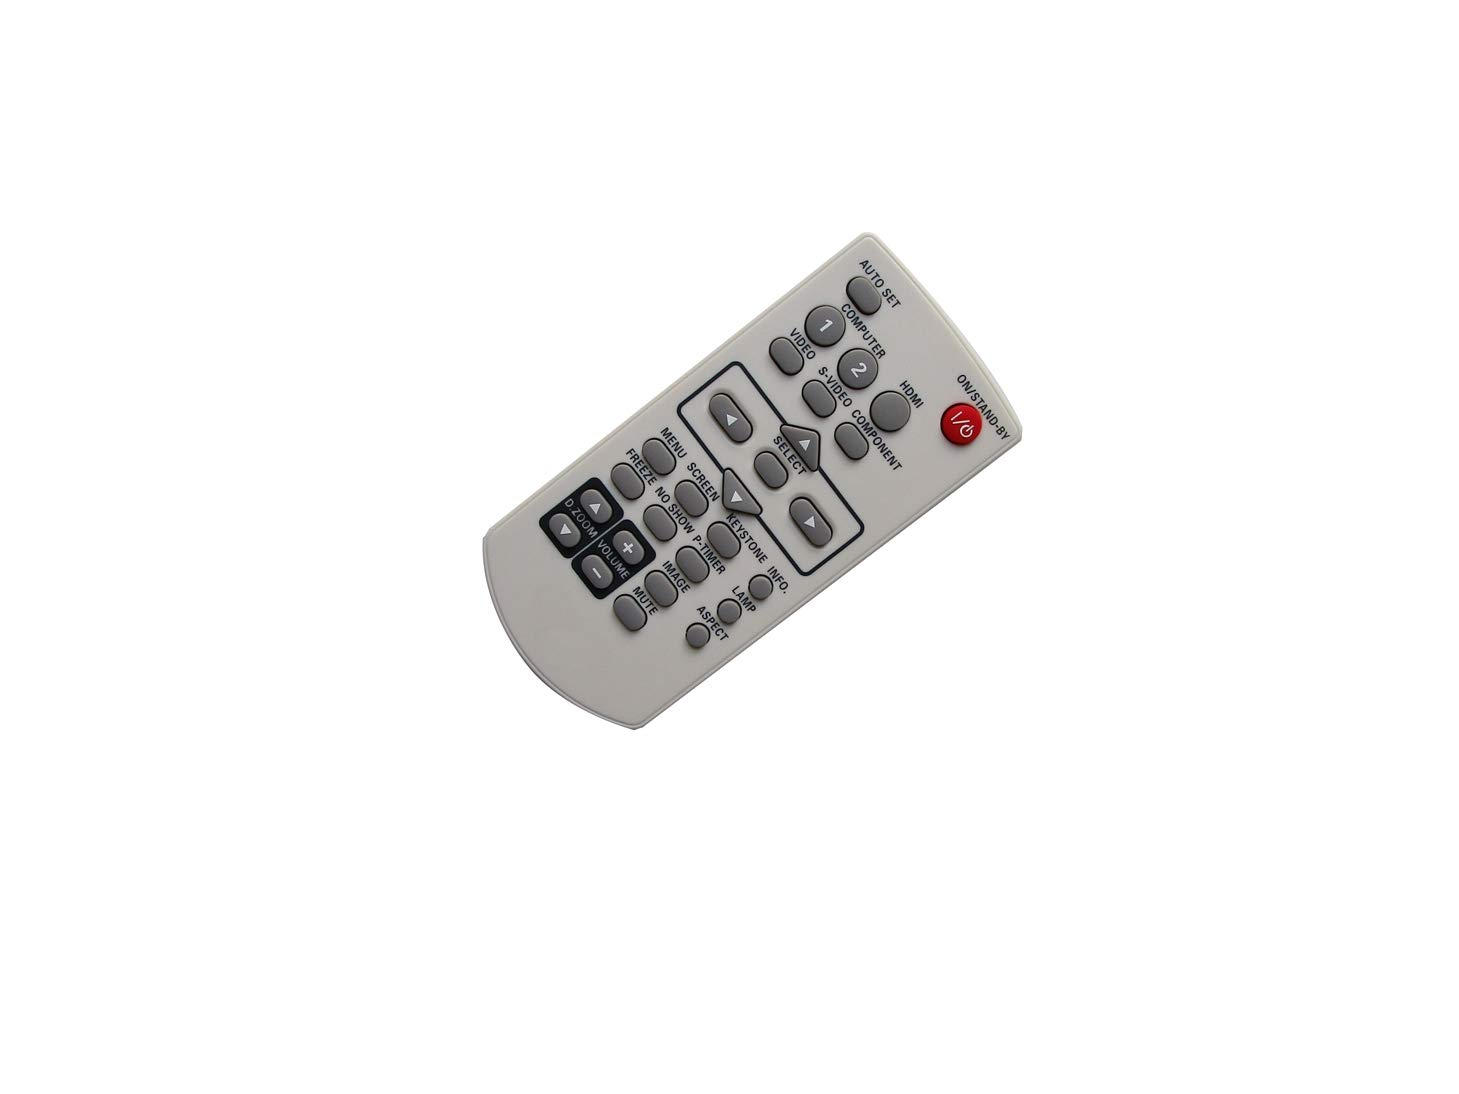 Hotsmtbang Replacement Remote Control for Eiki LC-XBL20 LC-XBL25 LC-XBL30 LC-XBL26 LC-XBL21 XGA Conference Room 3LCD Projector